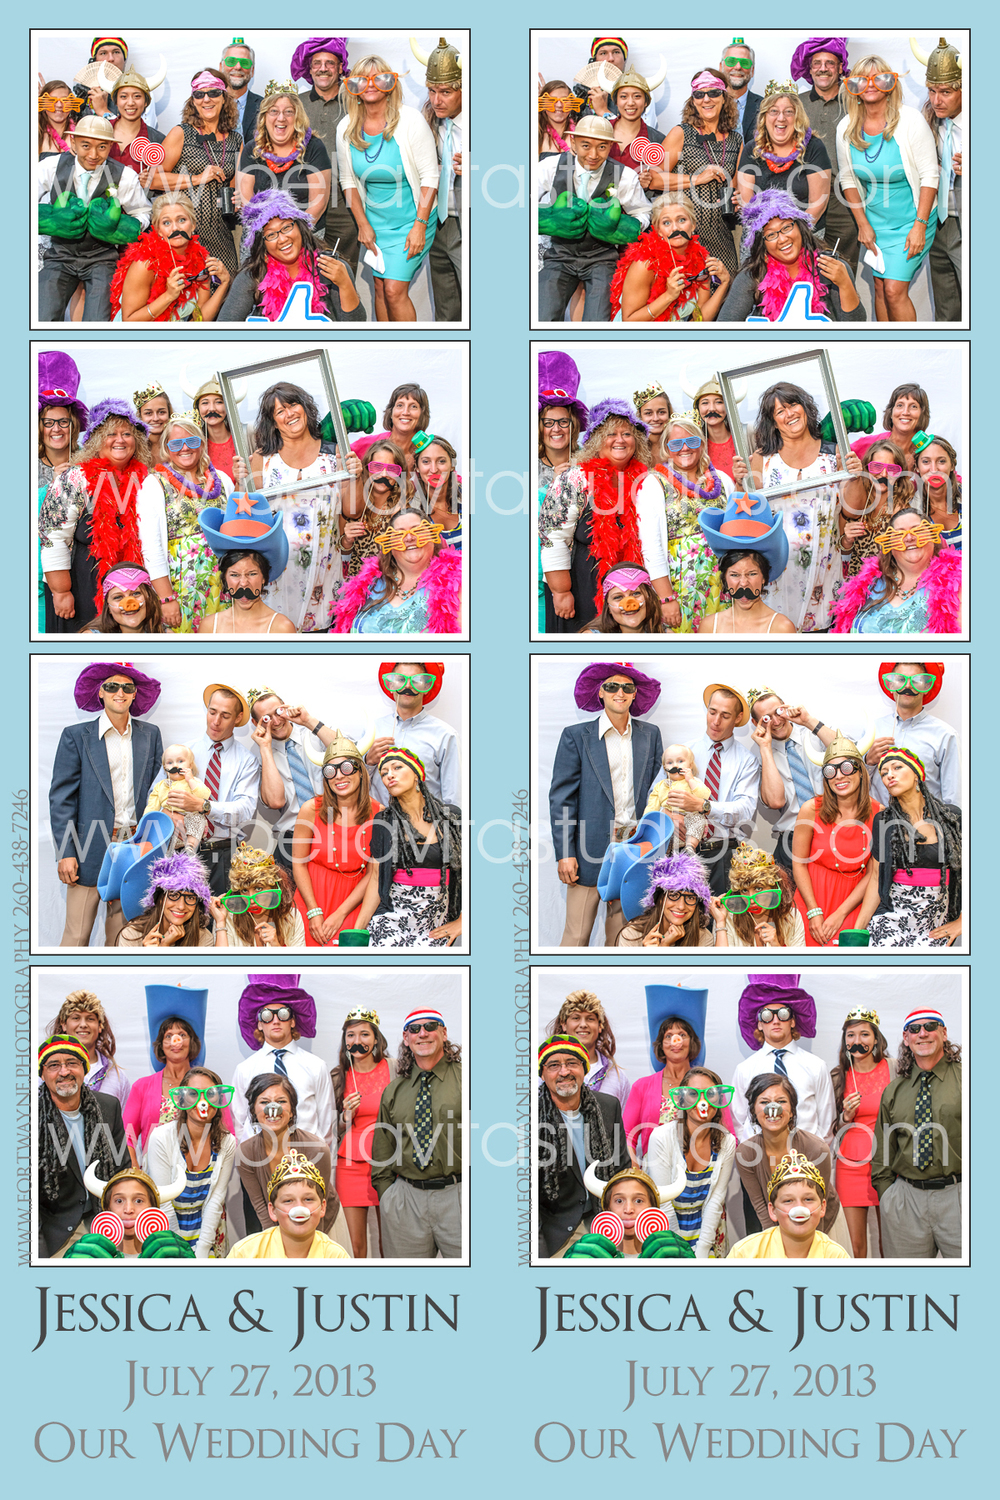 photobooth photo booth rental fort wayne indiana huntington decatur bluffton auburn angola muncie